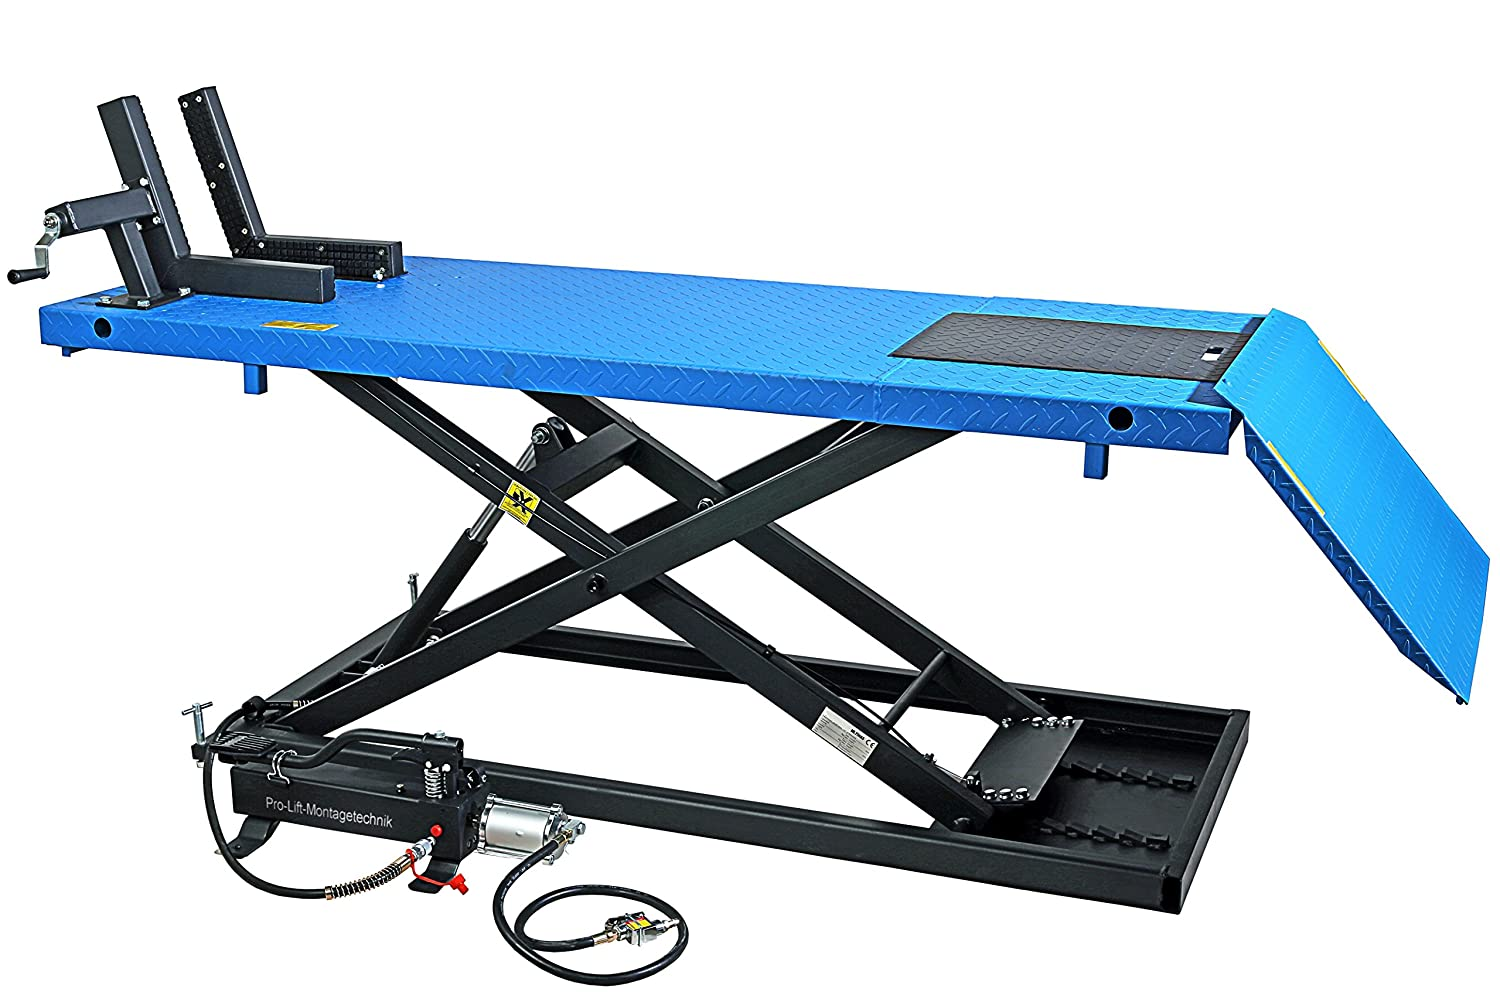 PRO Lift Mounting Technology 675kg Scissors Stage, Hydraulic